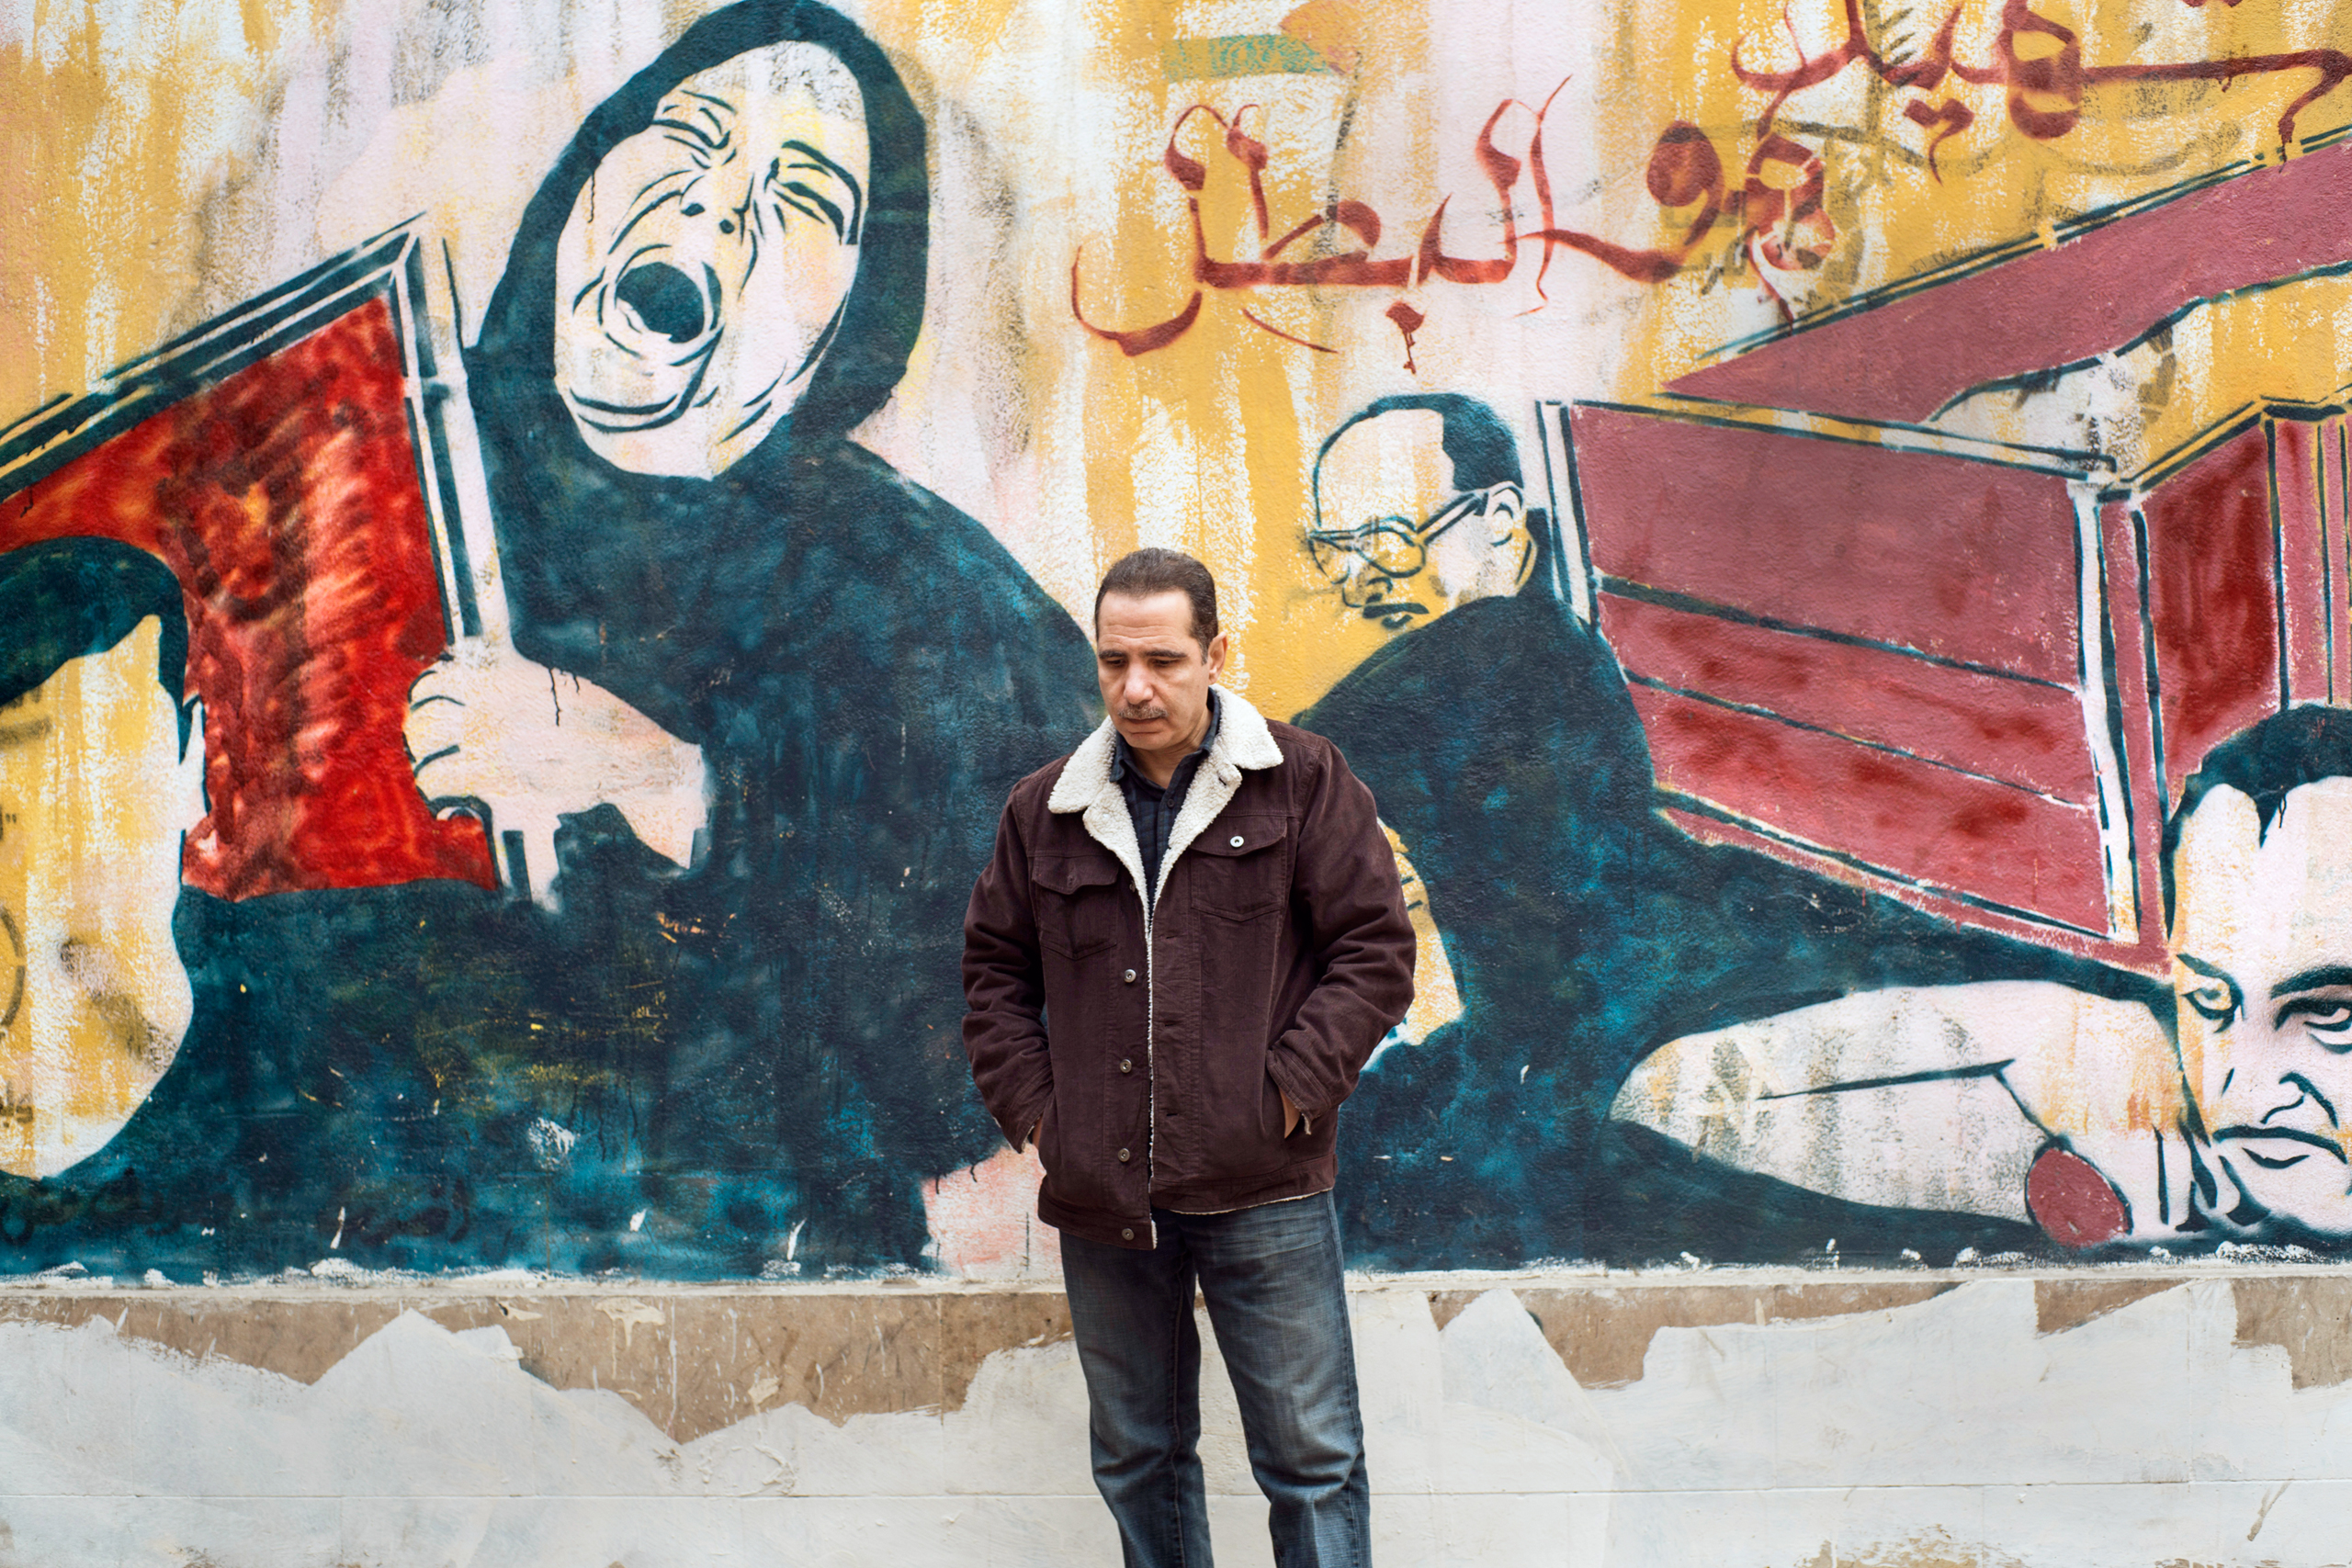 Ali Hassan Ali became an activist for reform after his son was killed by government security forces during the 2011 protests in Cairo                                          (David Degner / Time Magazine)